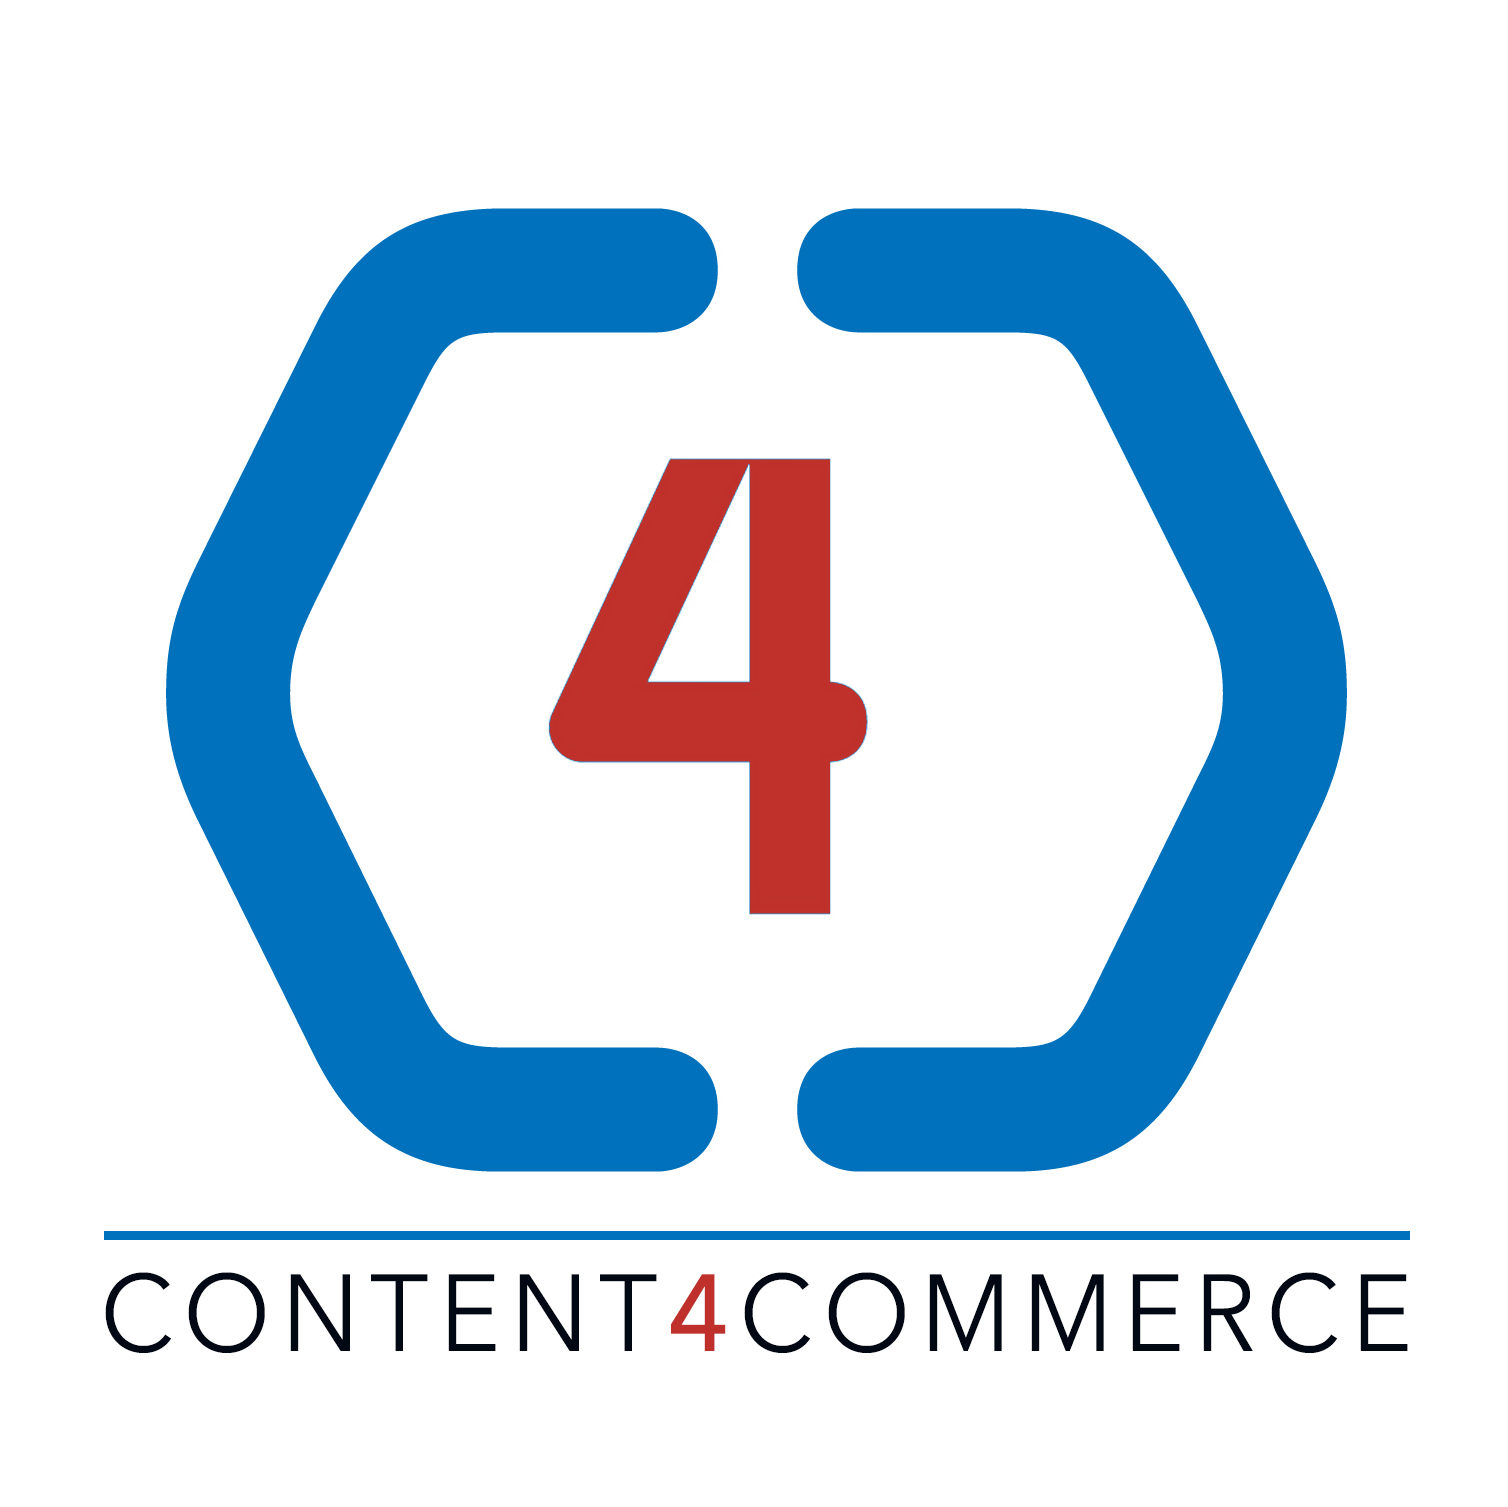 CONTENT-4-COMMERCE